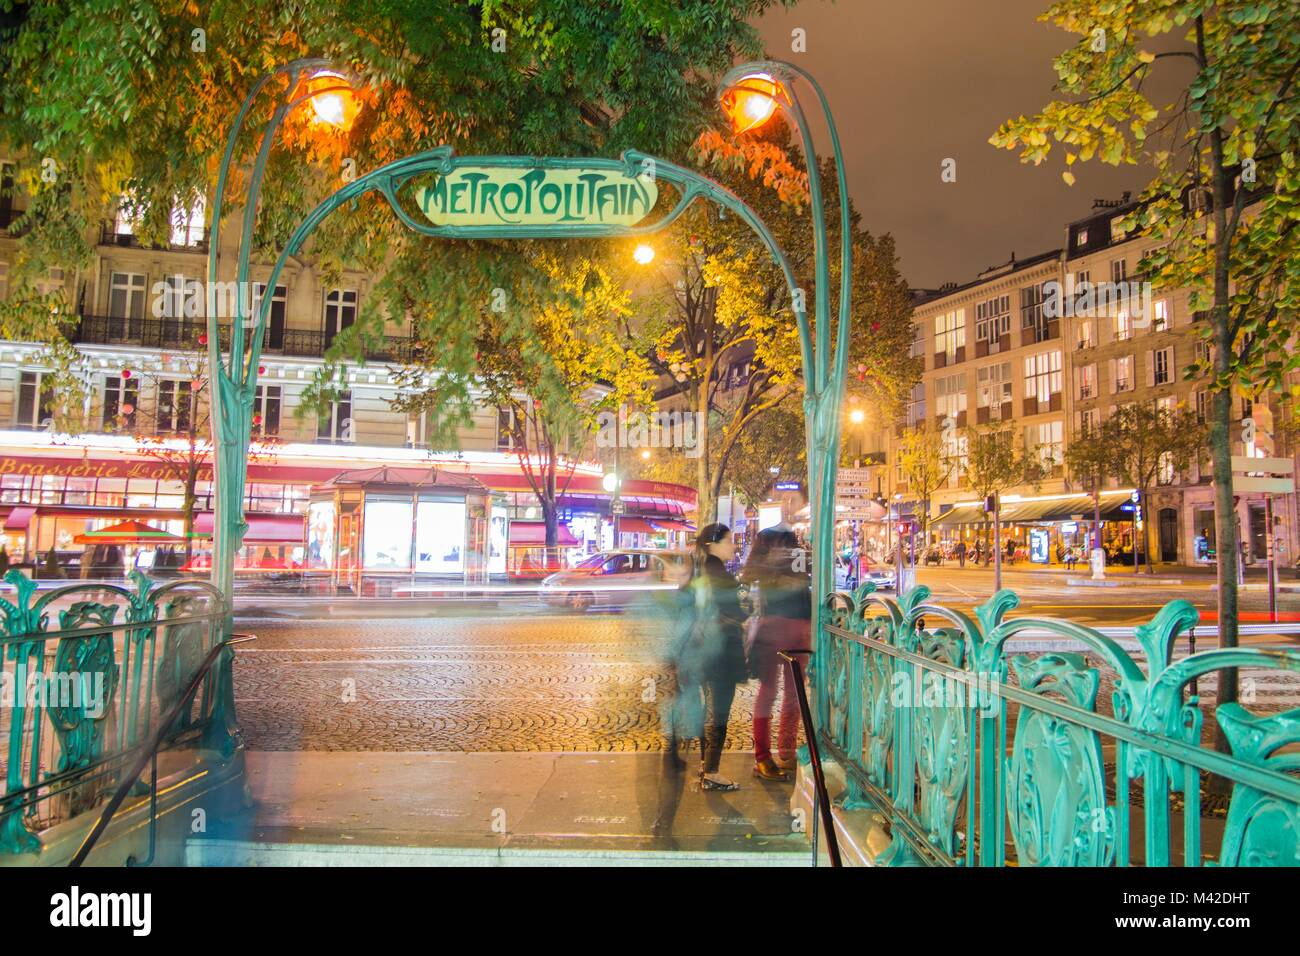 metro in the center of Paris by night - Stock Image